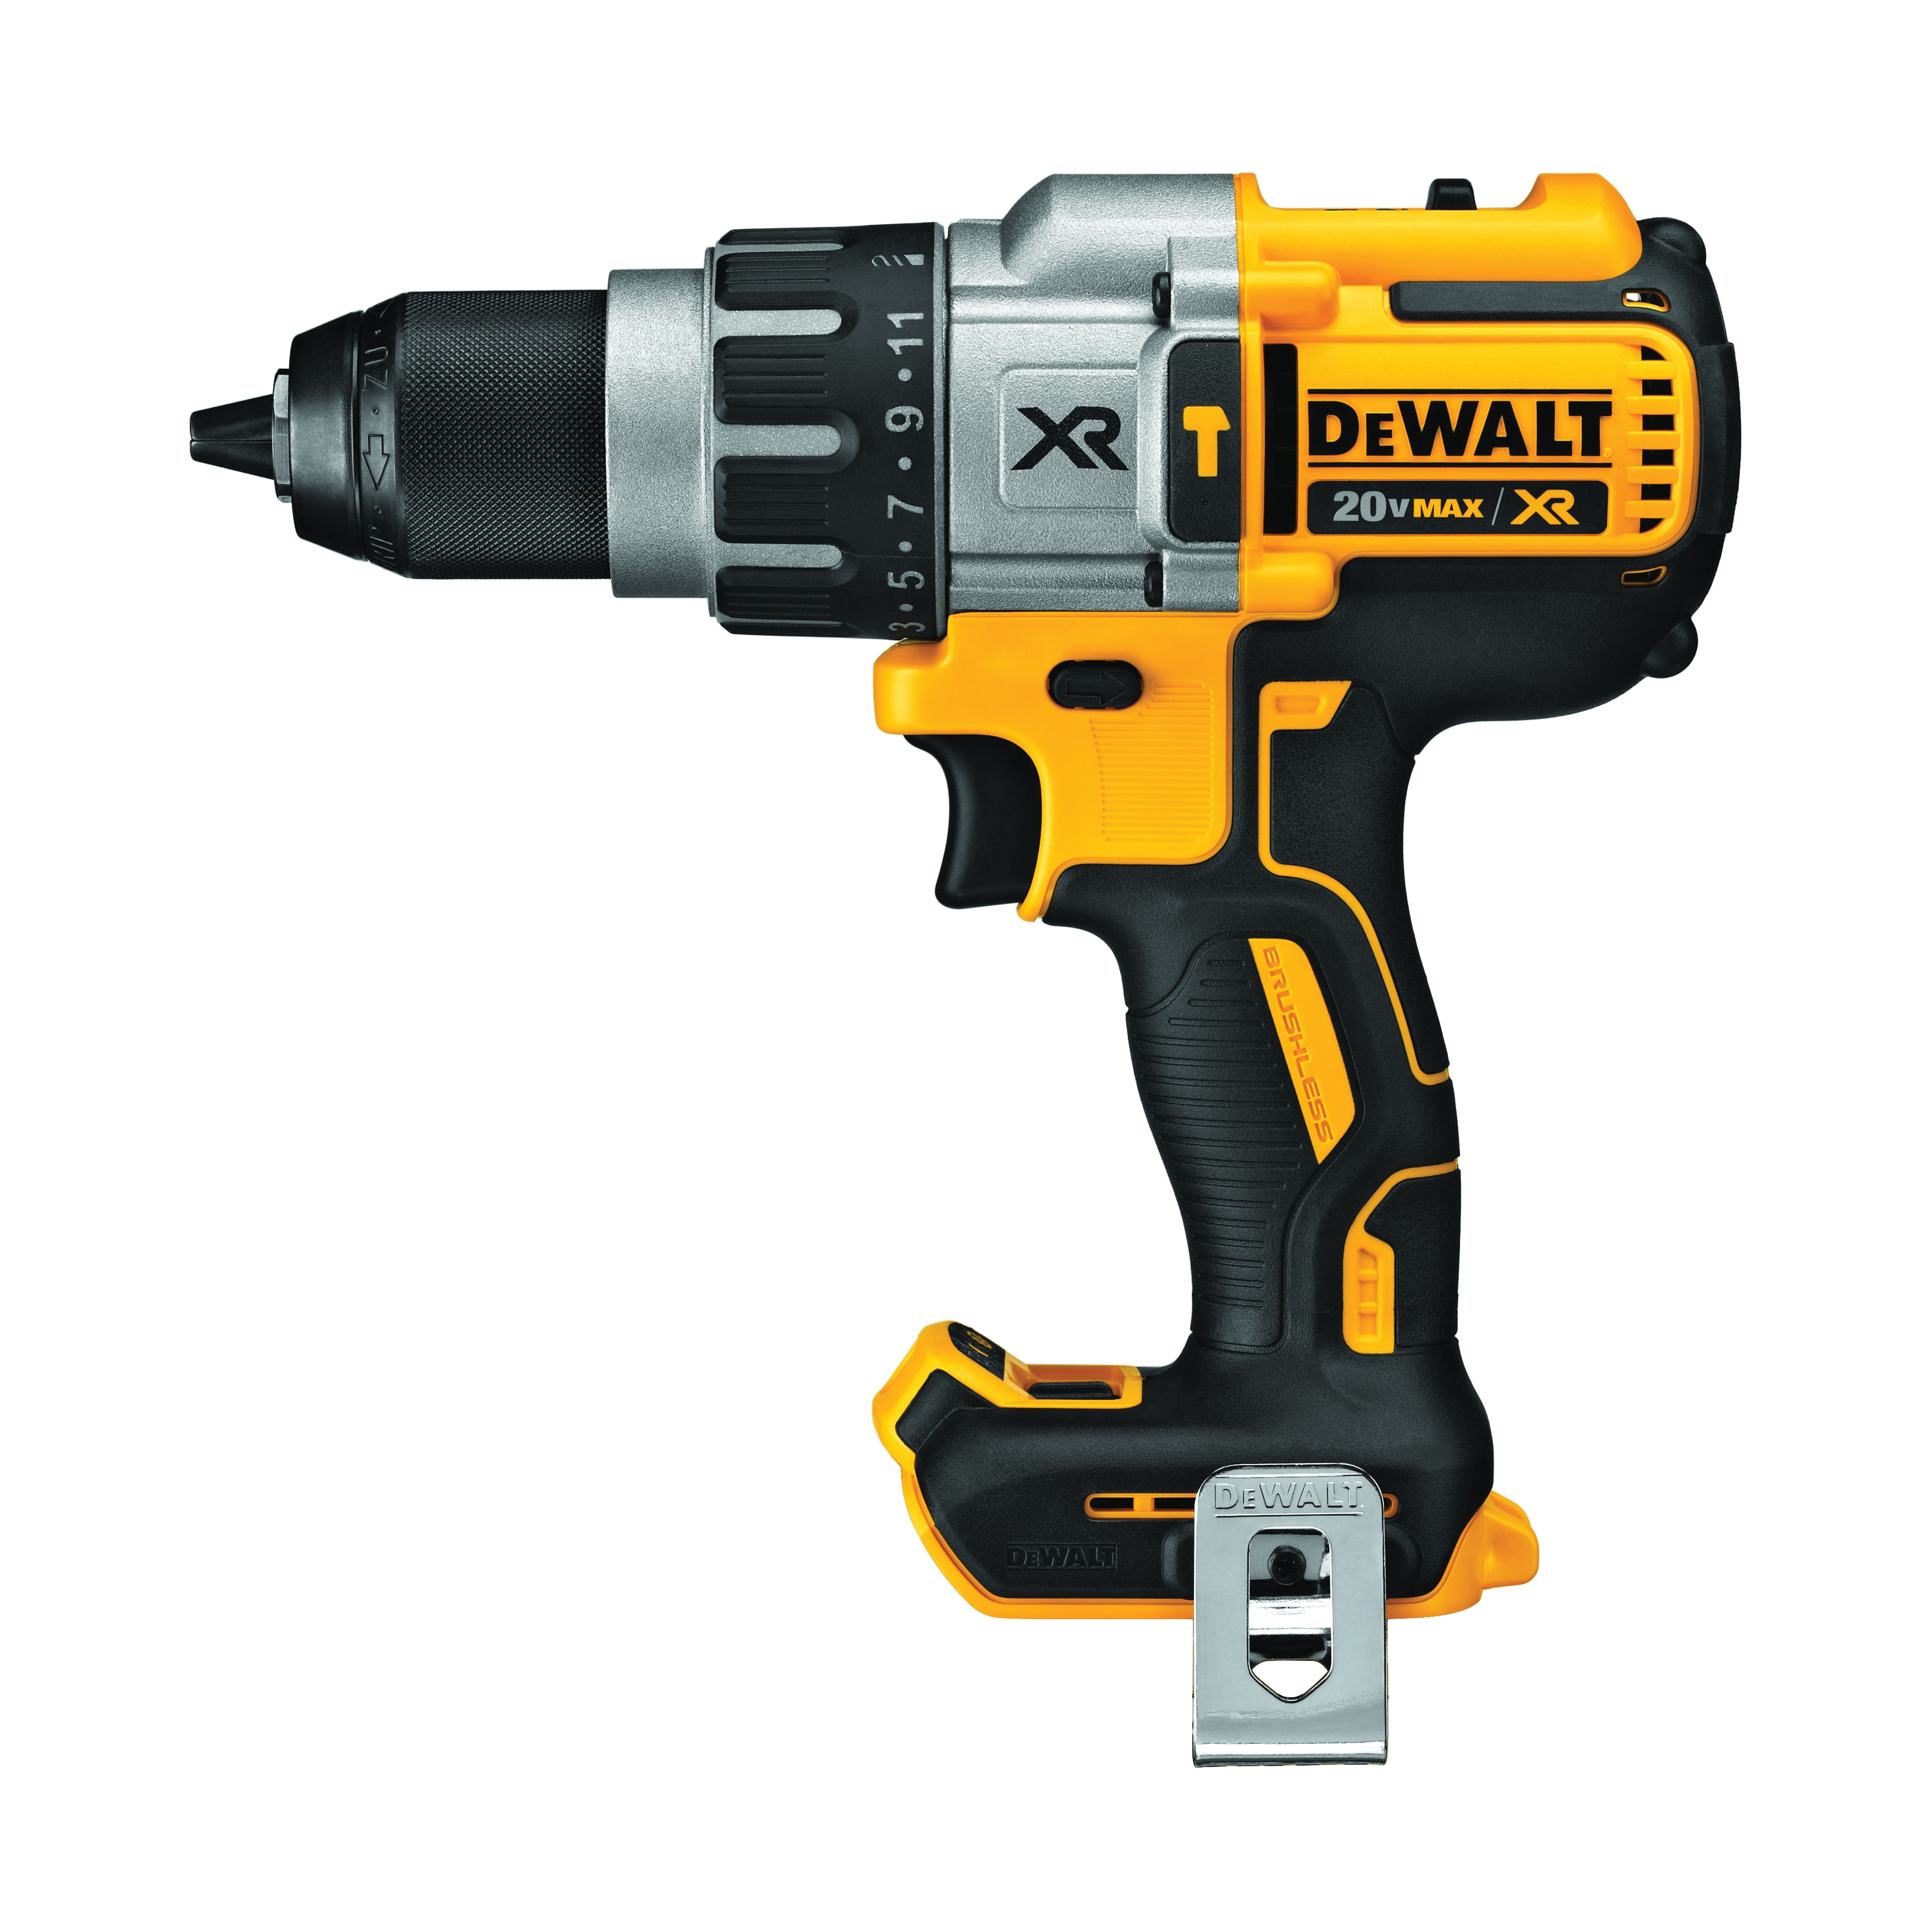 DeWALT® 20V MAX* DCD996B XR® Brushless Cordless Hammer Drill, 1/2 in Metal Ratcheting Chuck, 20 VDC, 0 to 450/0 to 1300/0 to 2000 rpm No-Load, Lithium-Ion Battery